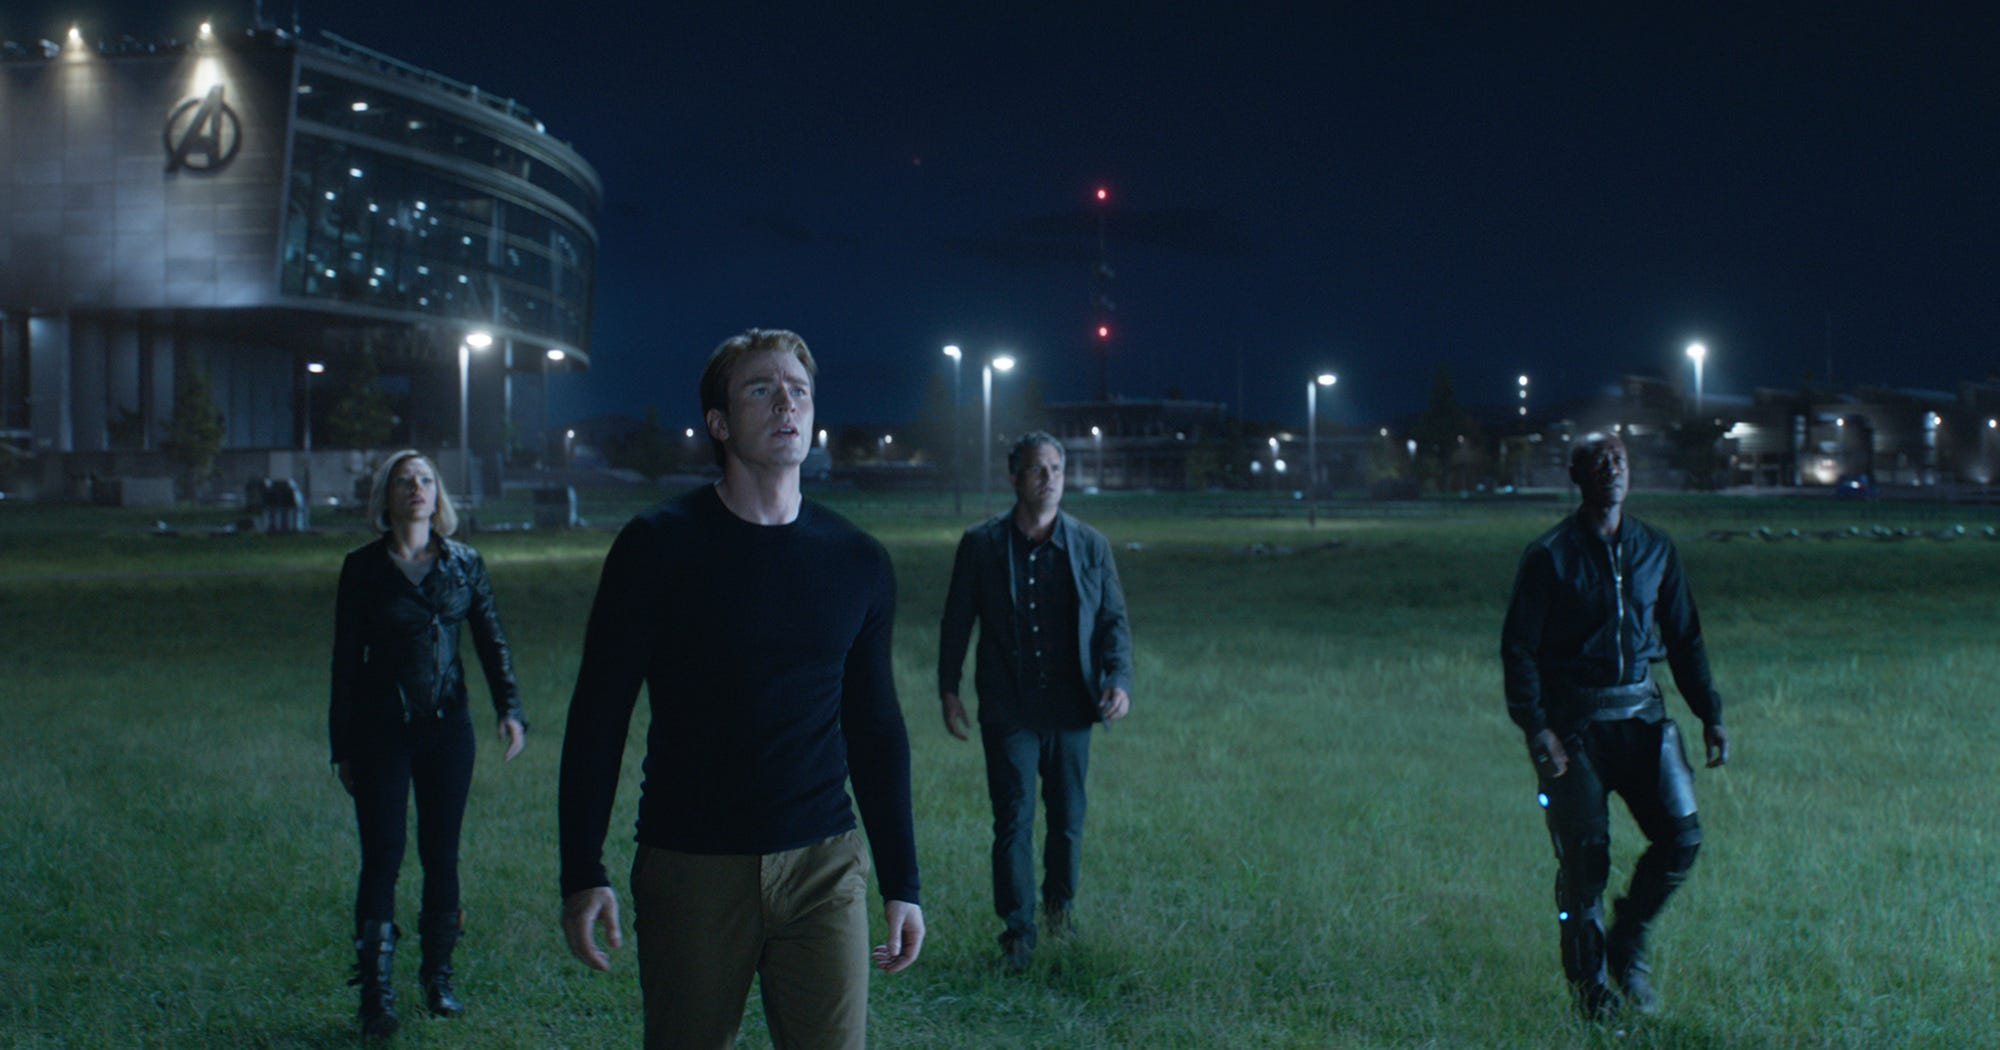 Who Are The Marvel Character Cameos In Avengers Endgame